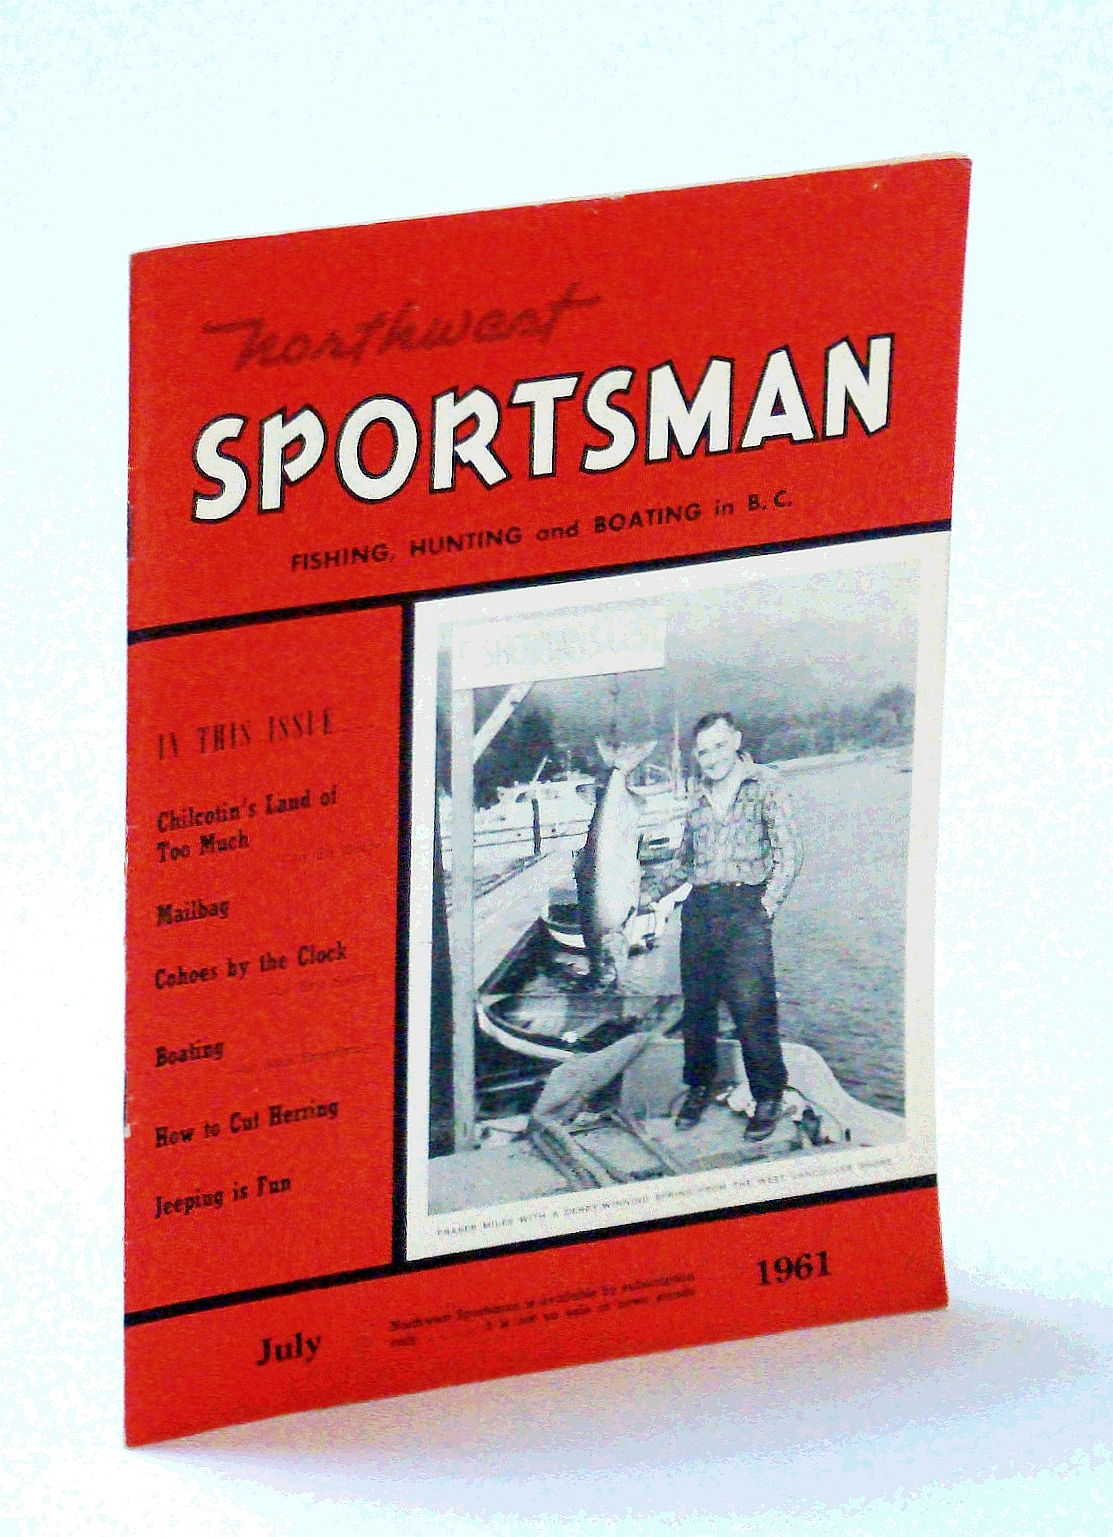 Image for Northwest Sportsman Magazine - Fishing, Hunting and Boating in B.C., July 1961 - Nice Cover Photo of Fraser Miles with a Derby-Winning Spring